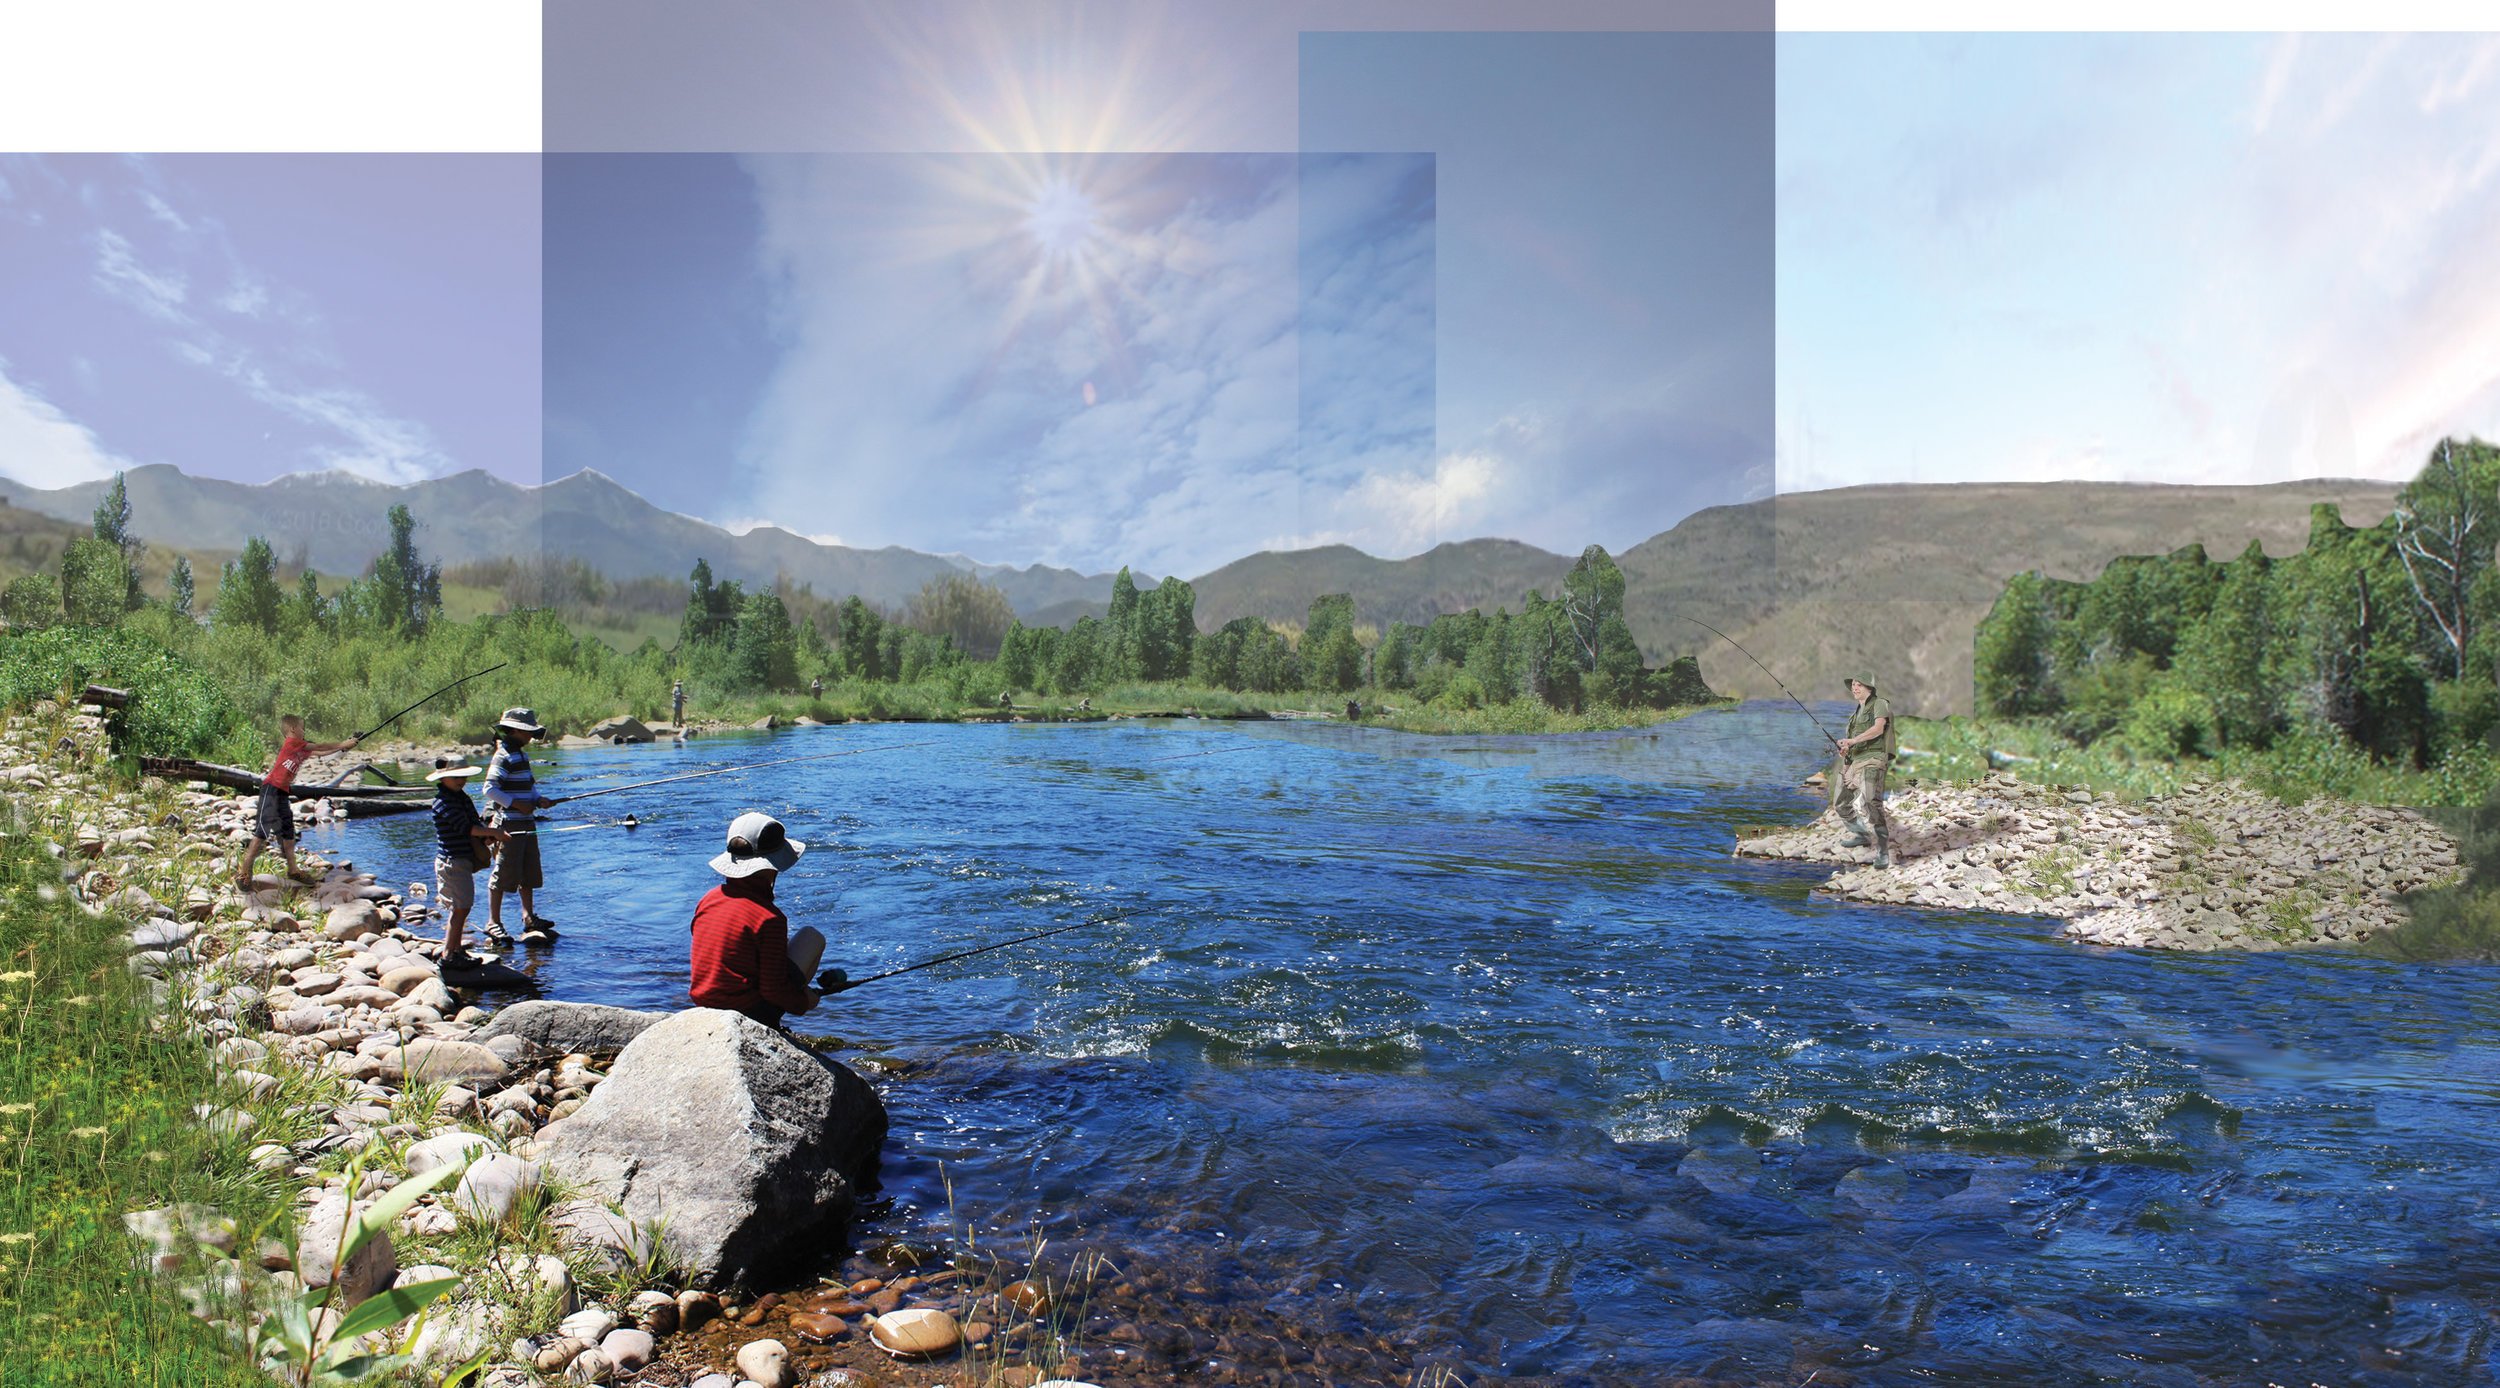 Fishing_Rendered Perspective-2.jpg